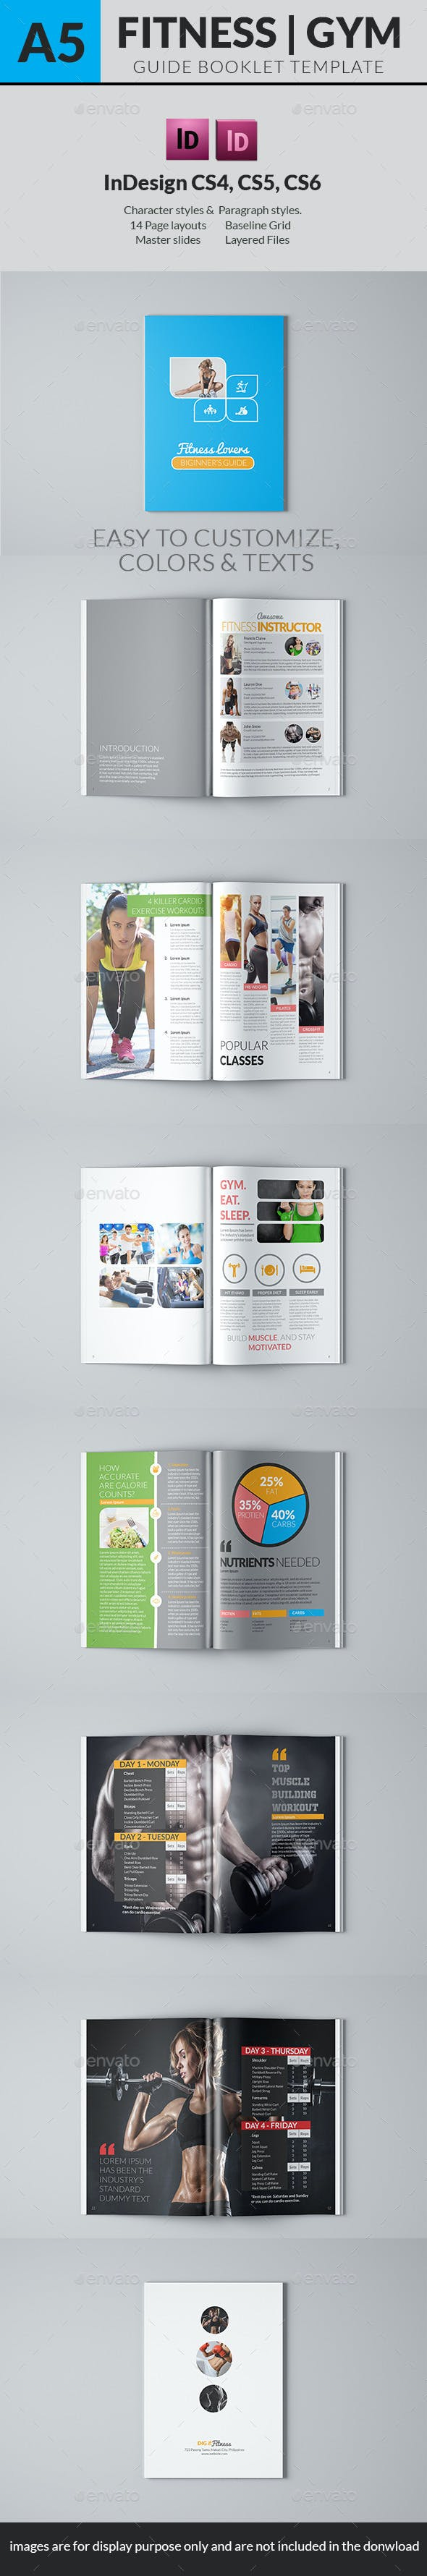 fitness lovers guide book template by hermz graphicriver